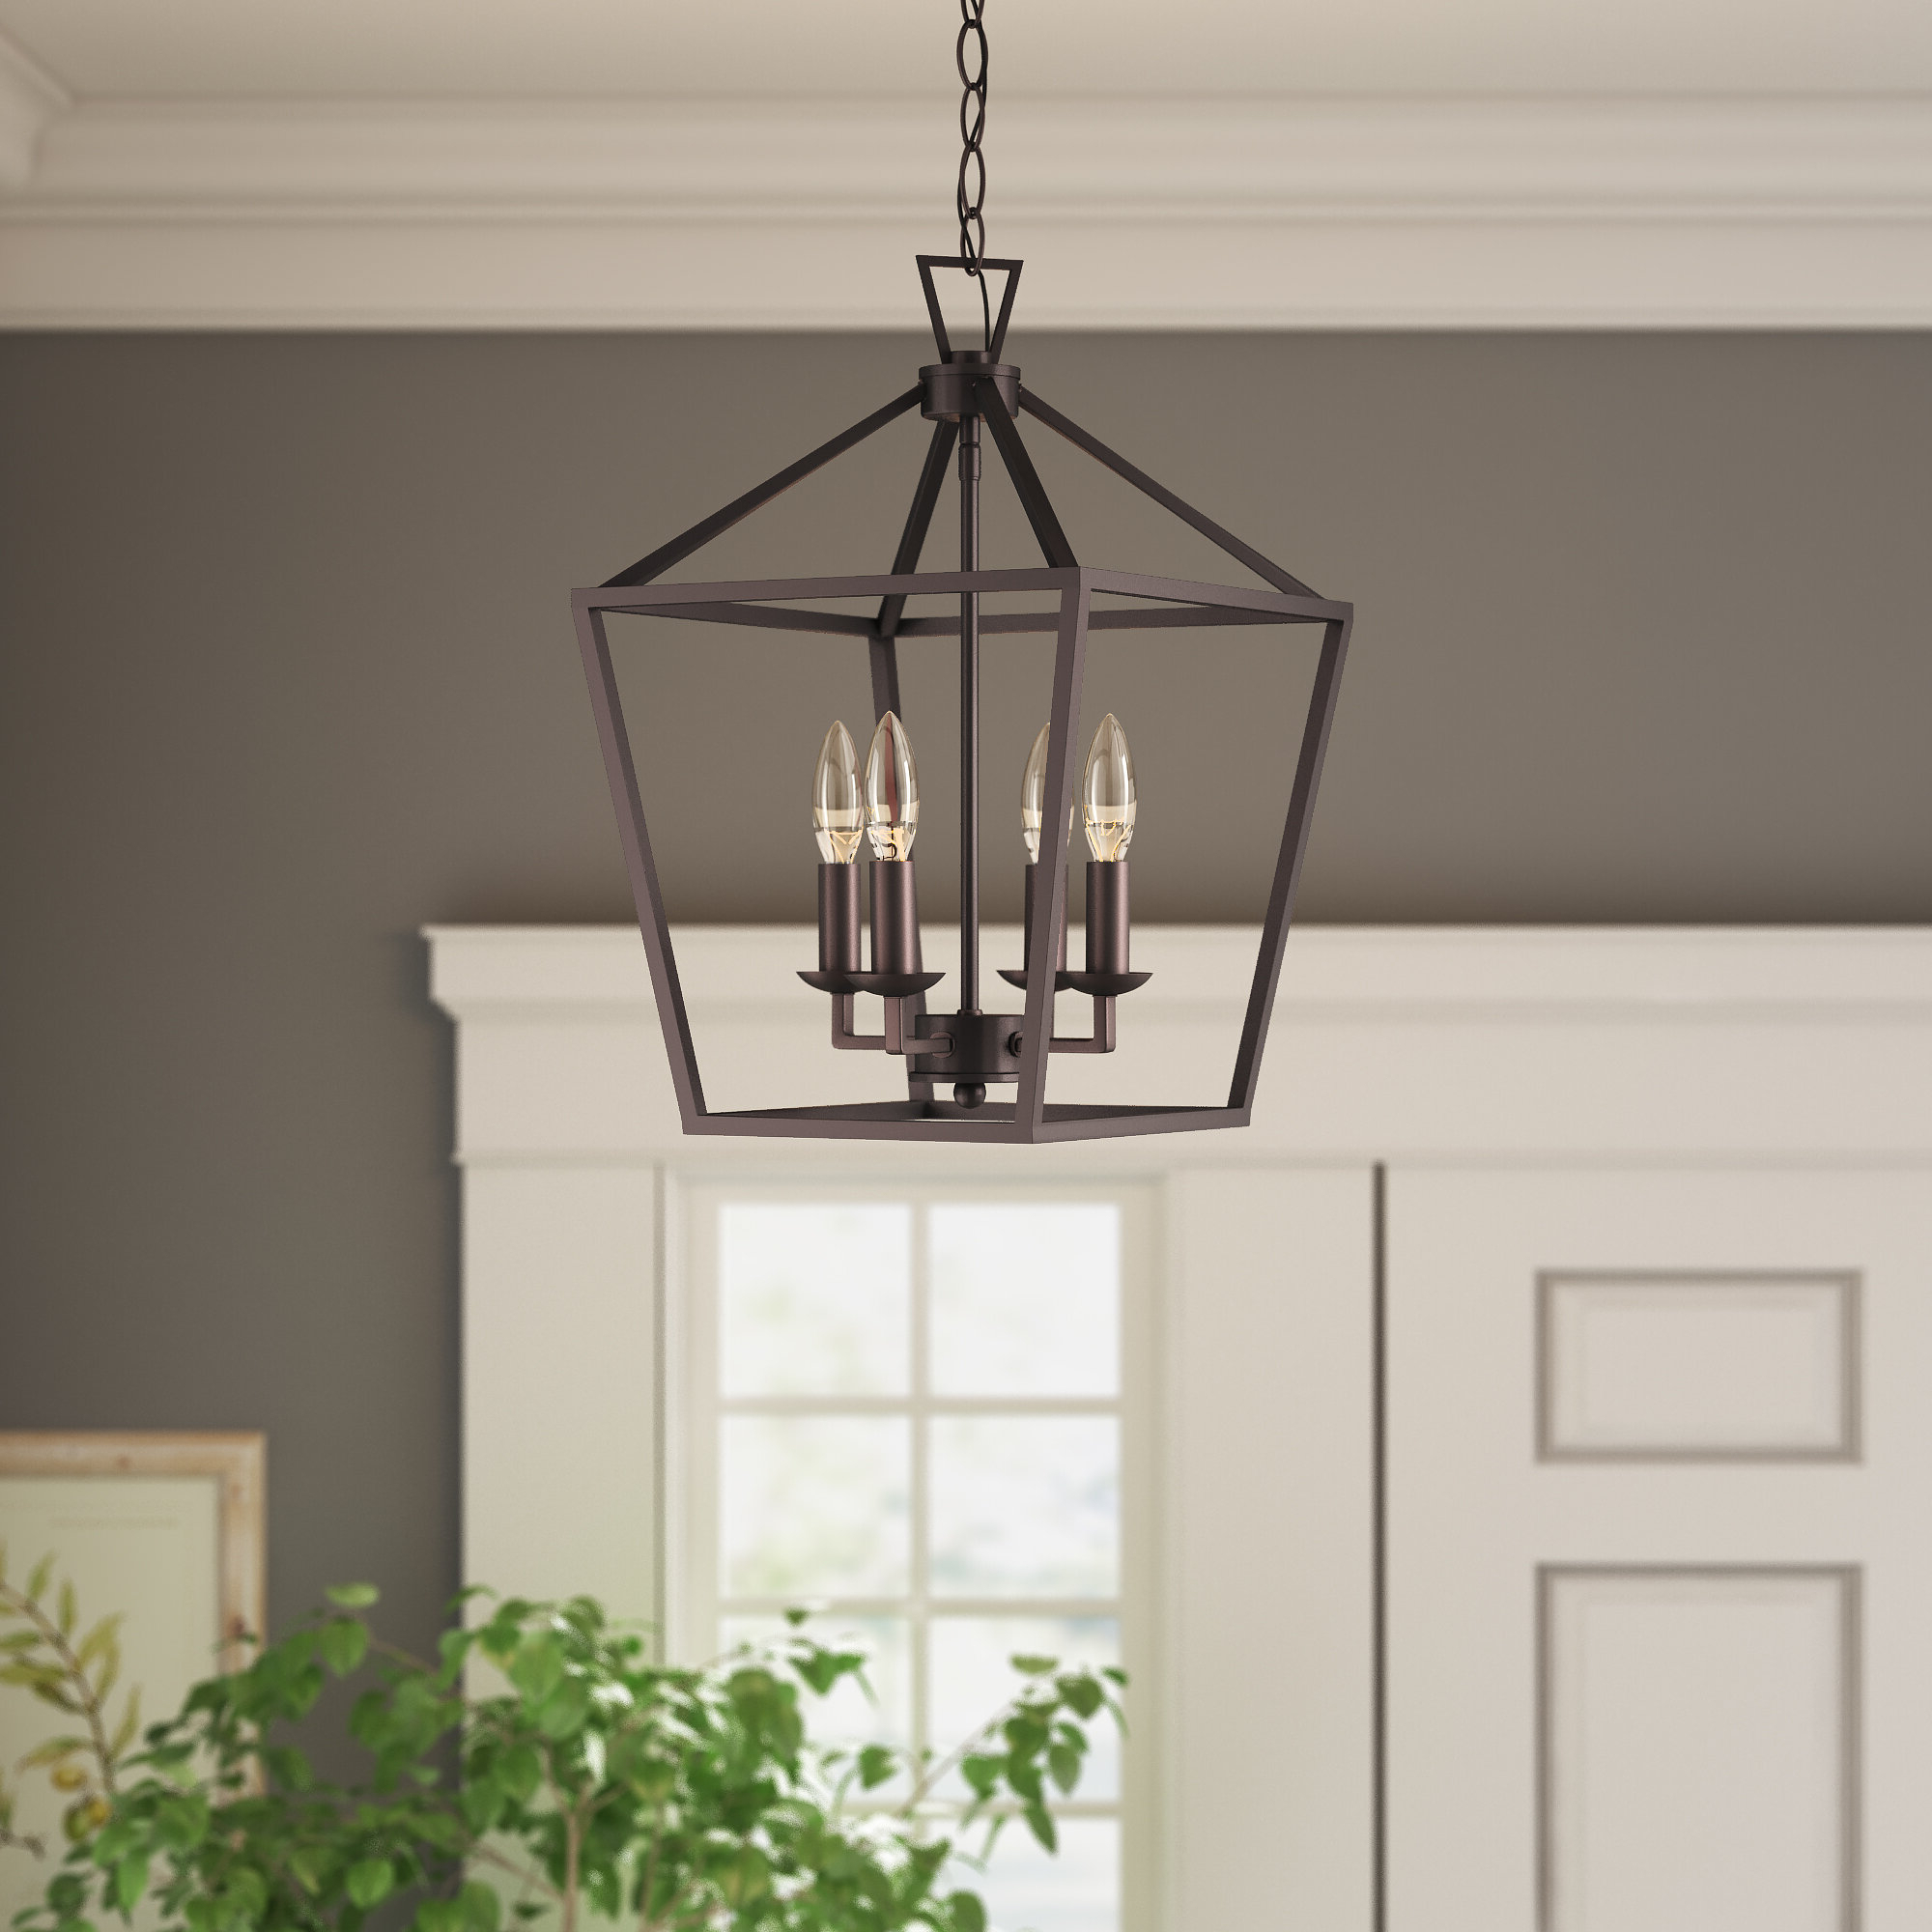 Louanne 1 Light Lantern Geometric Pendants Pertaining To Newest Carmen 4 Light Lantern Geometric Pendant (View 9 of 25)